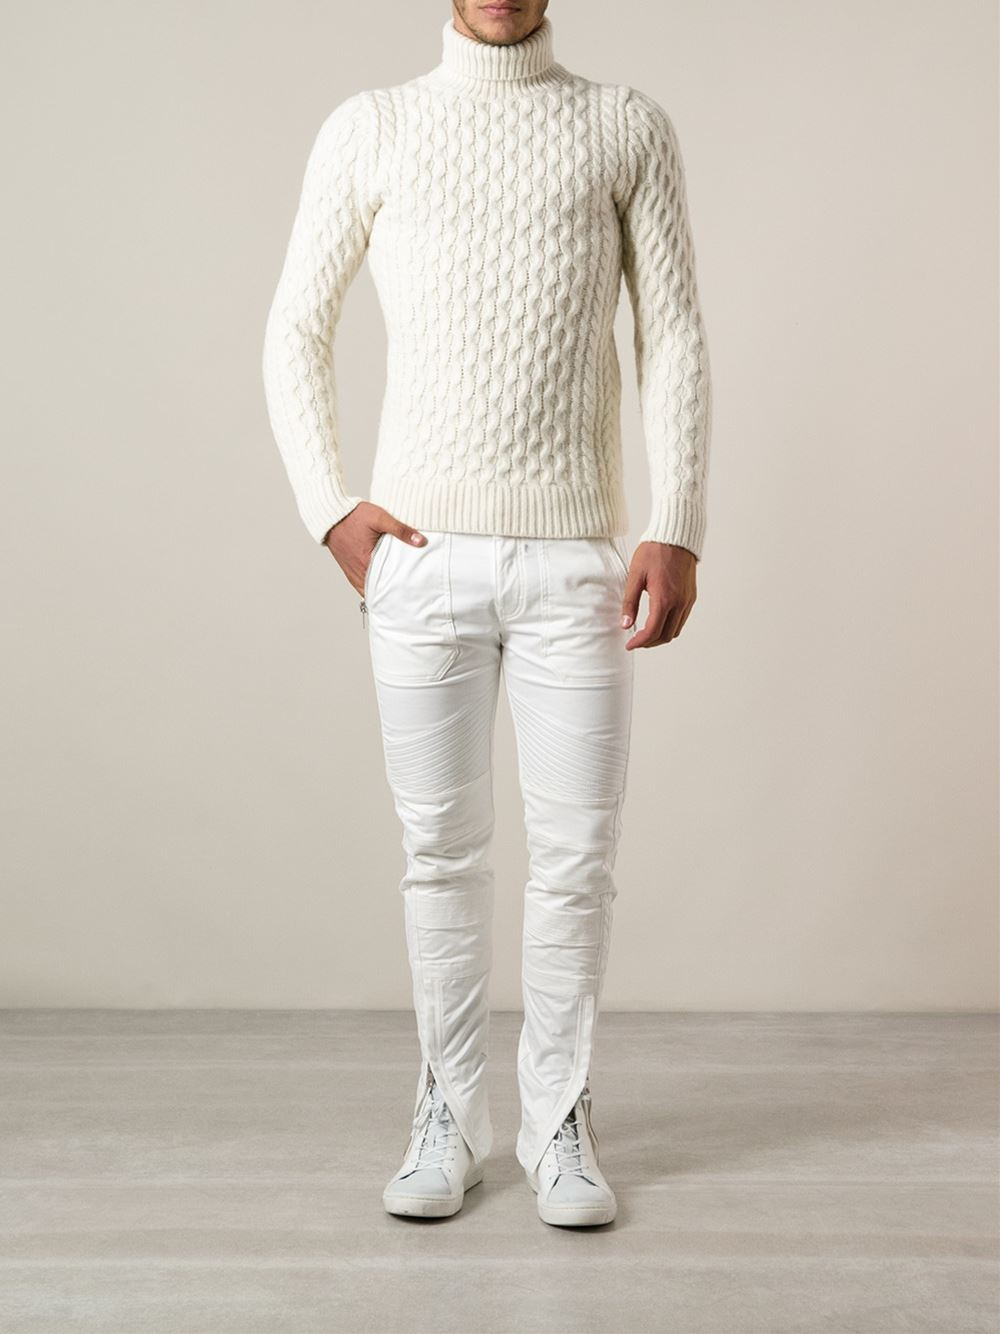 Diesel Cable Knit Turtleneck Sweater In White For Men Lyst